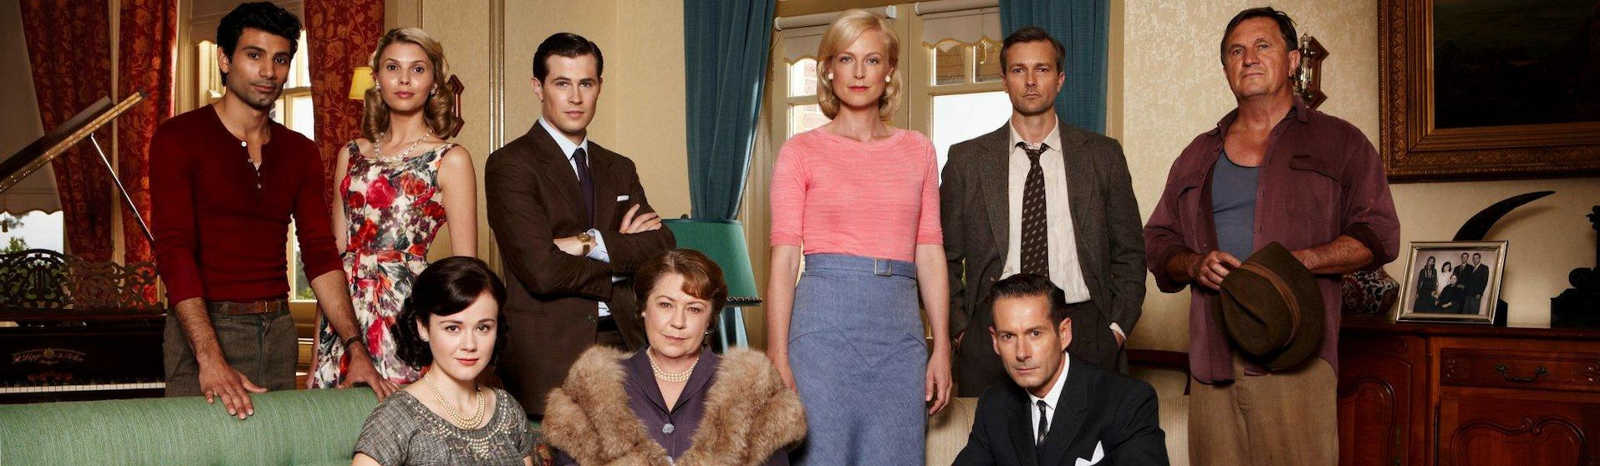 The cast lined up in a living room